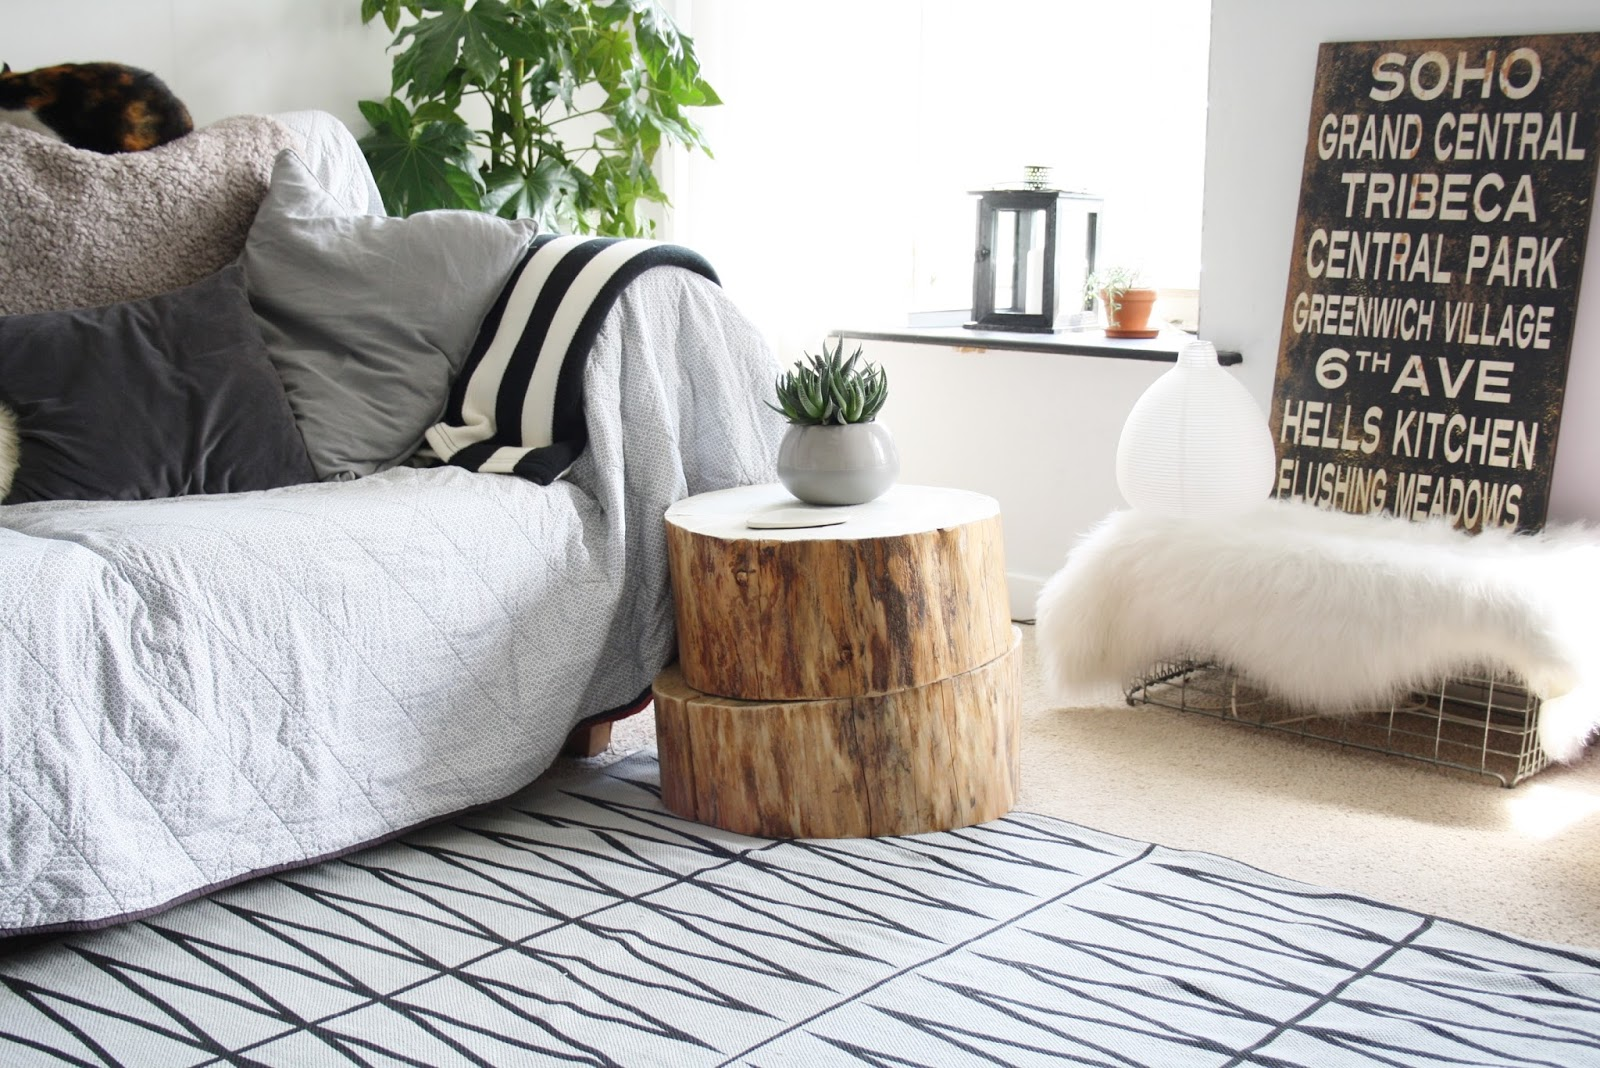 tree trunk side table contribute immense natural accent homesfeed two piles wood stump tone color small white porcelain pot for decorative plant modern patterns rug floors cozy